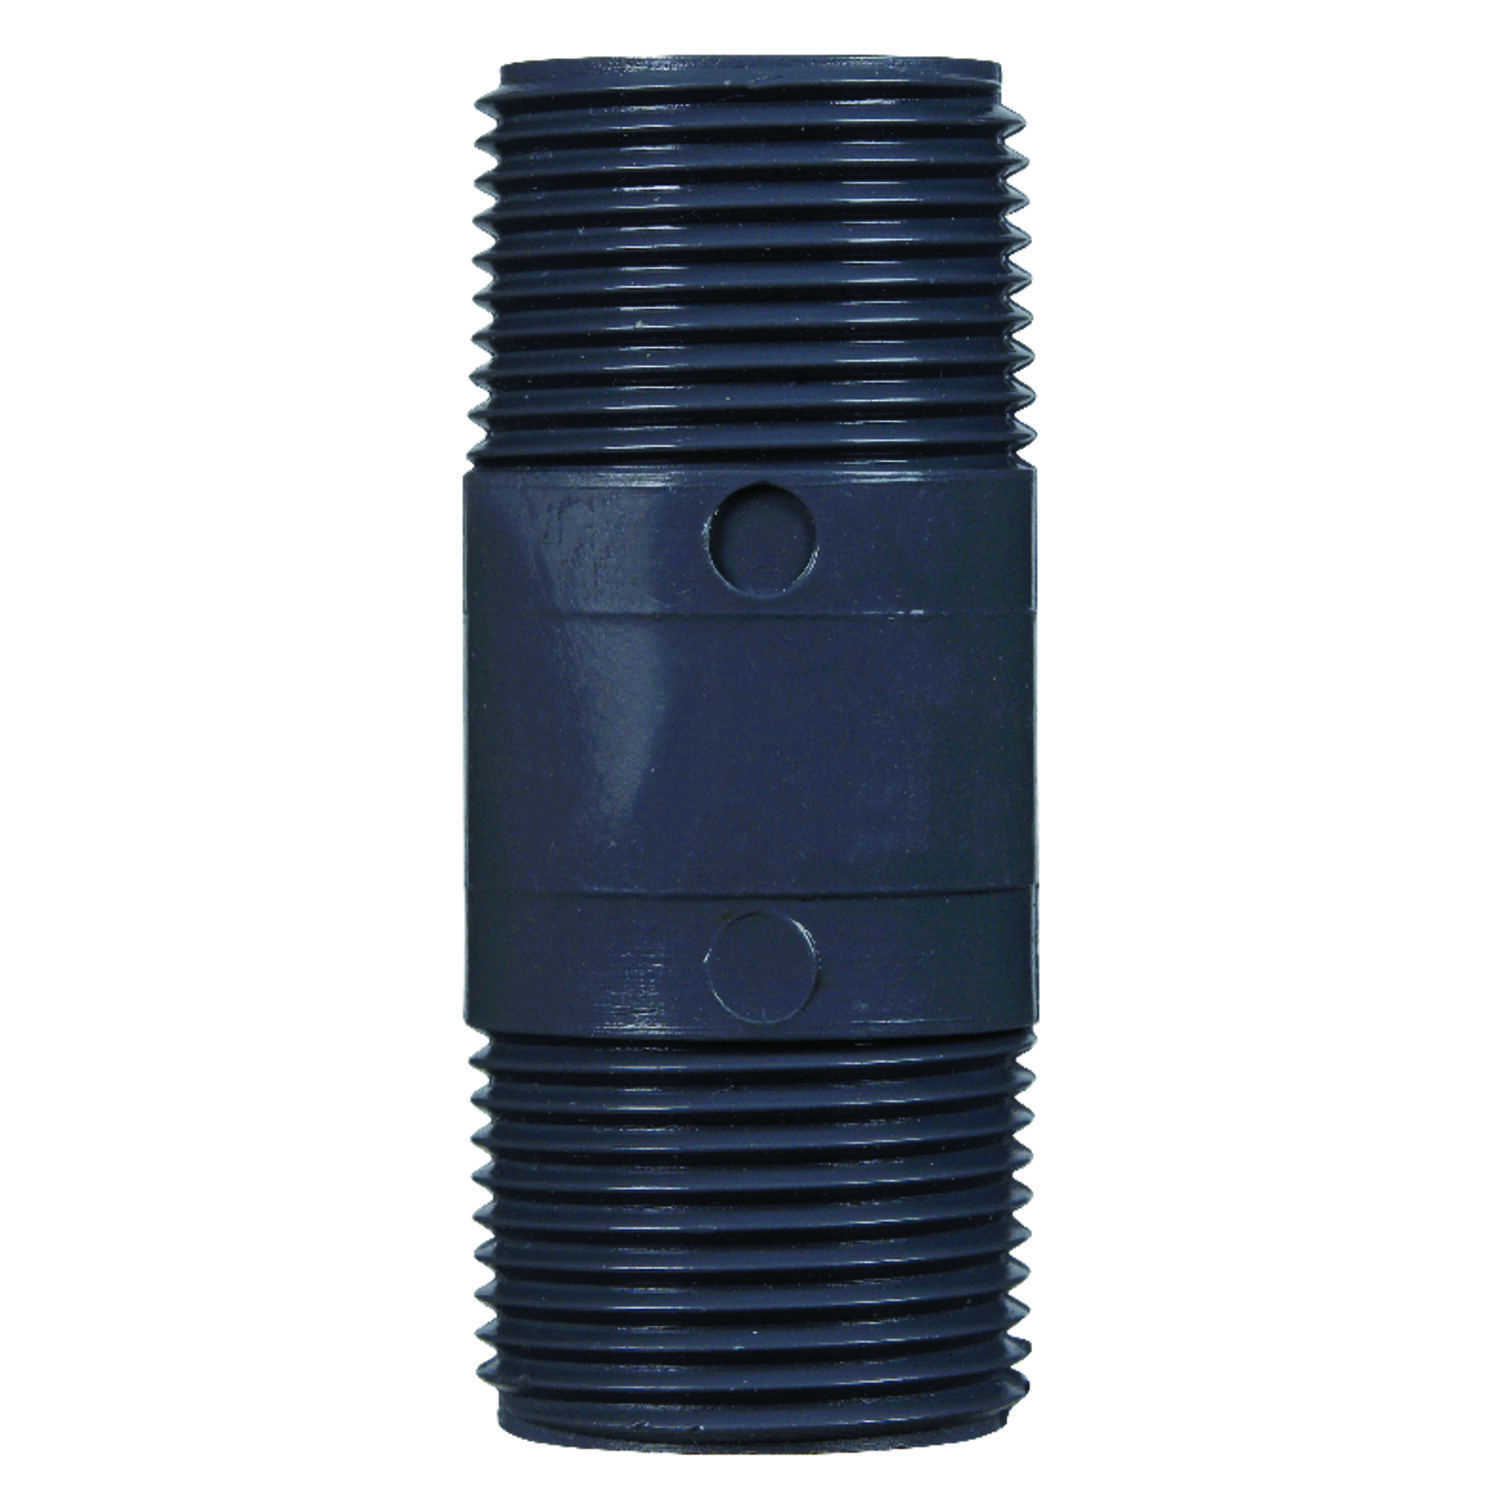 B & K  Schedule 80  3/4 in. MPT   x 3/4 in. Dia. MPT  PVC  Pipe Nipple